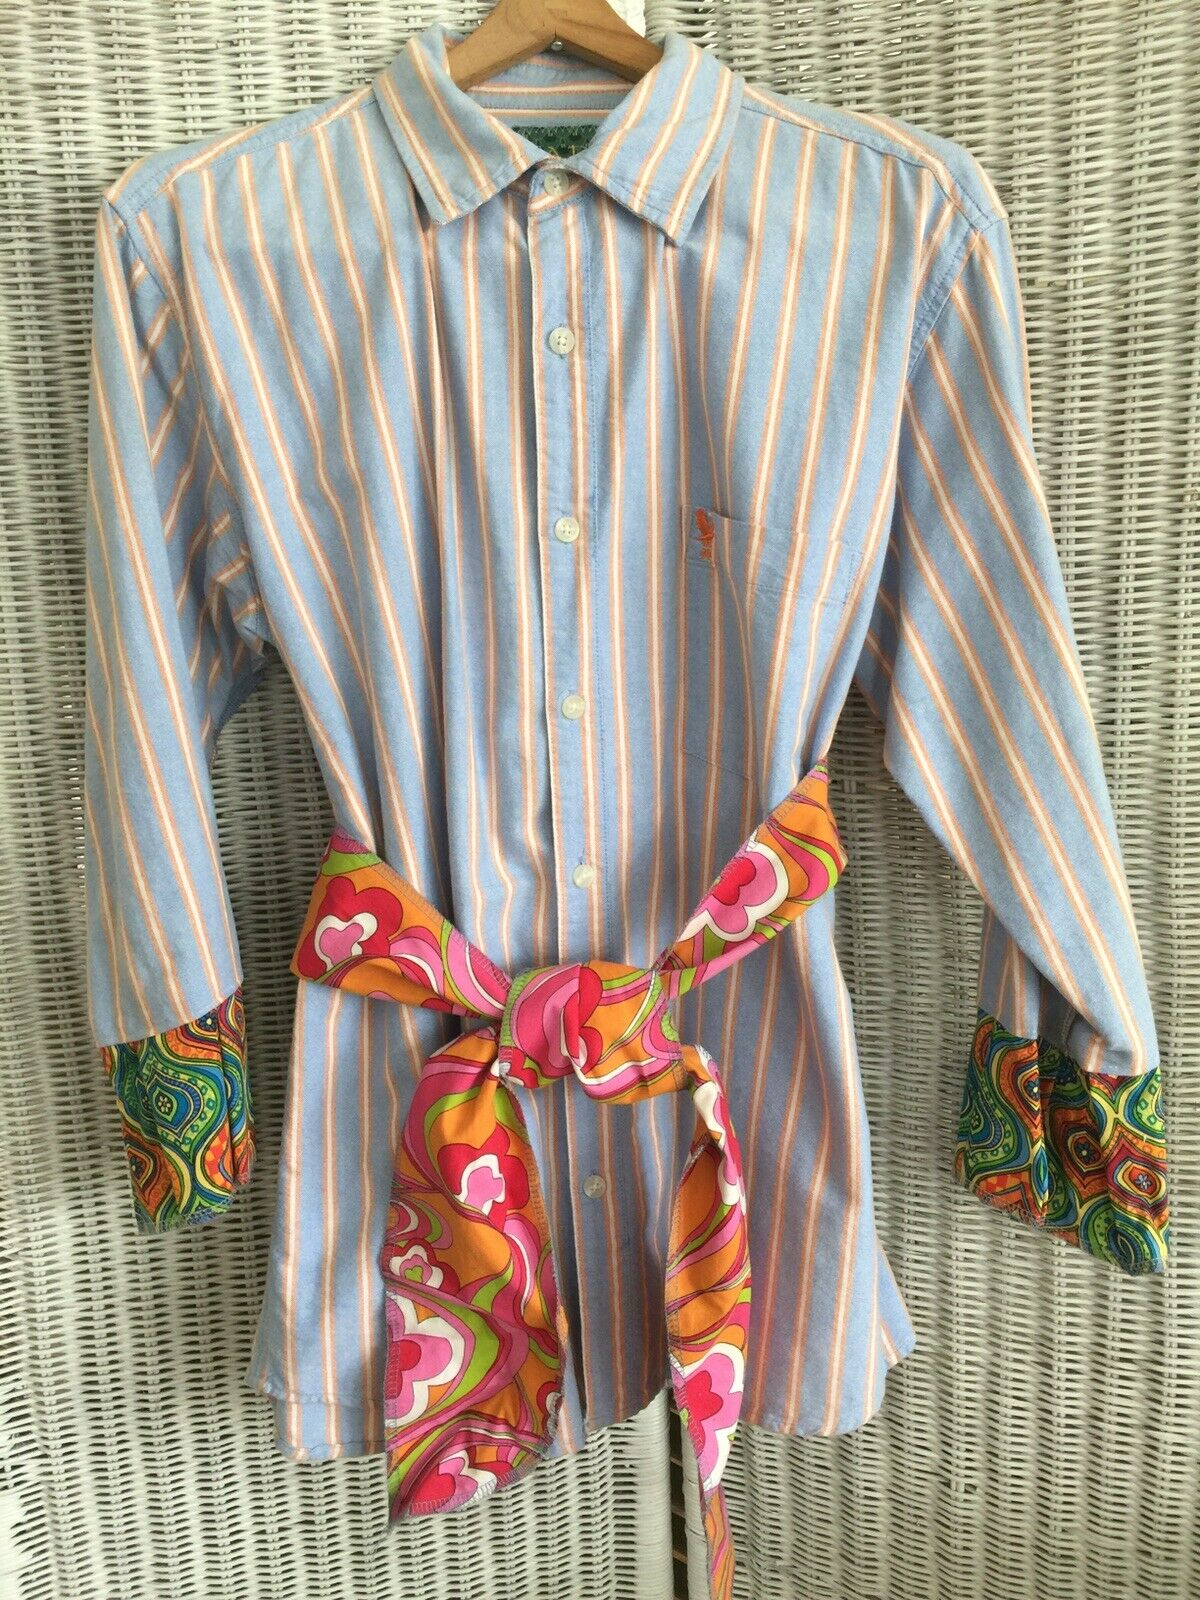 Womens Reconstructed Top From Mens Shirt bluee orange Pink White Turquoise